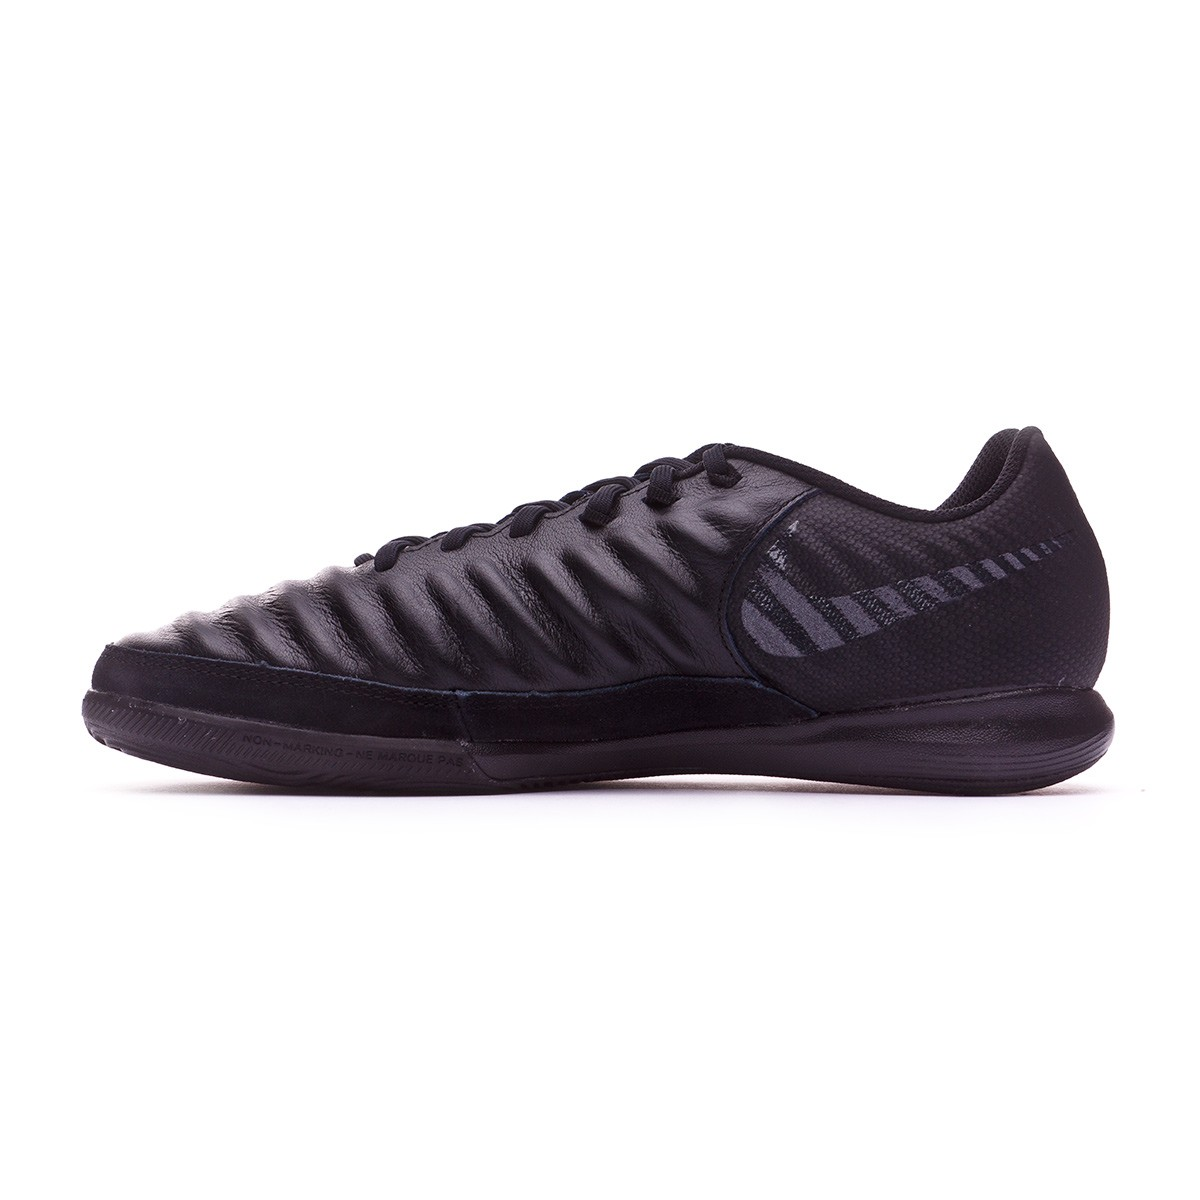 534c5ef3948c Futsal Boot Nike Tiempo Lunar LegendX VII Pro IC Black - Football store  Fútbol Emotion